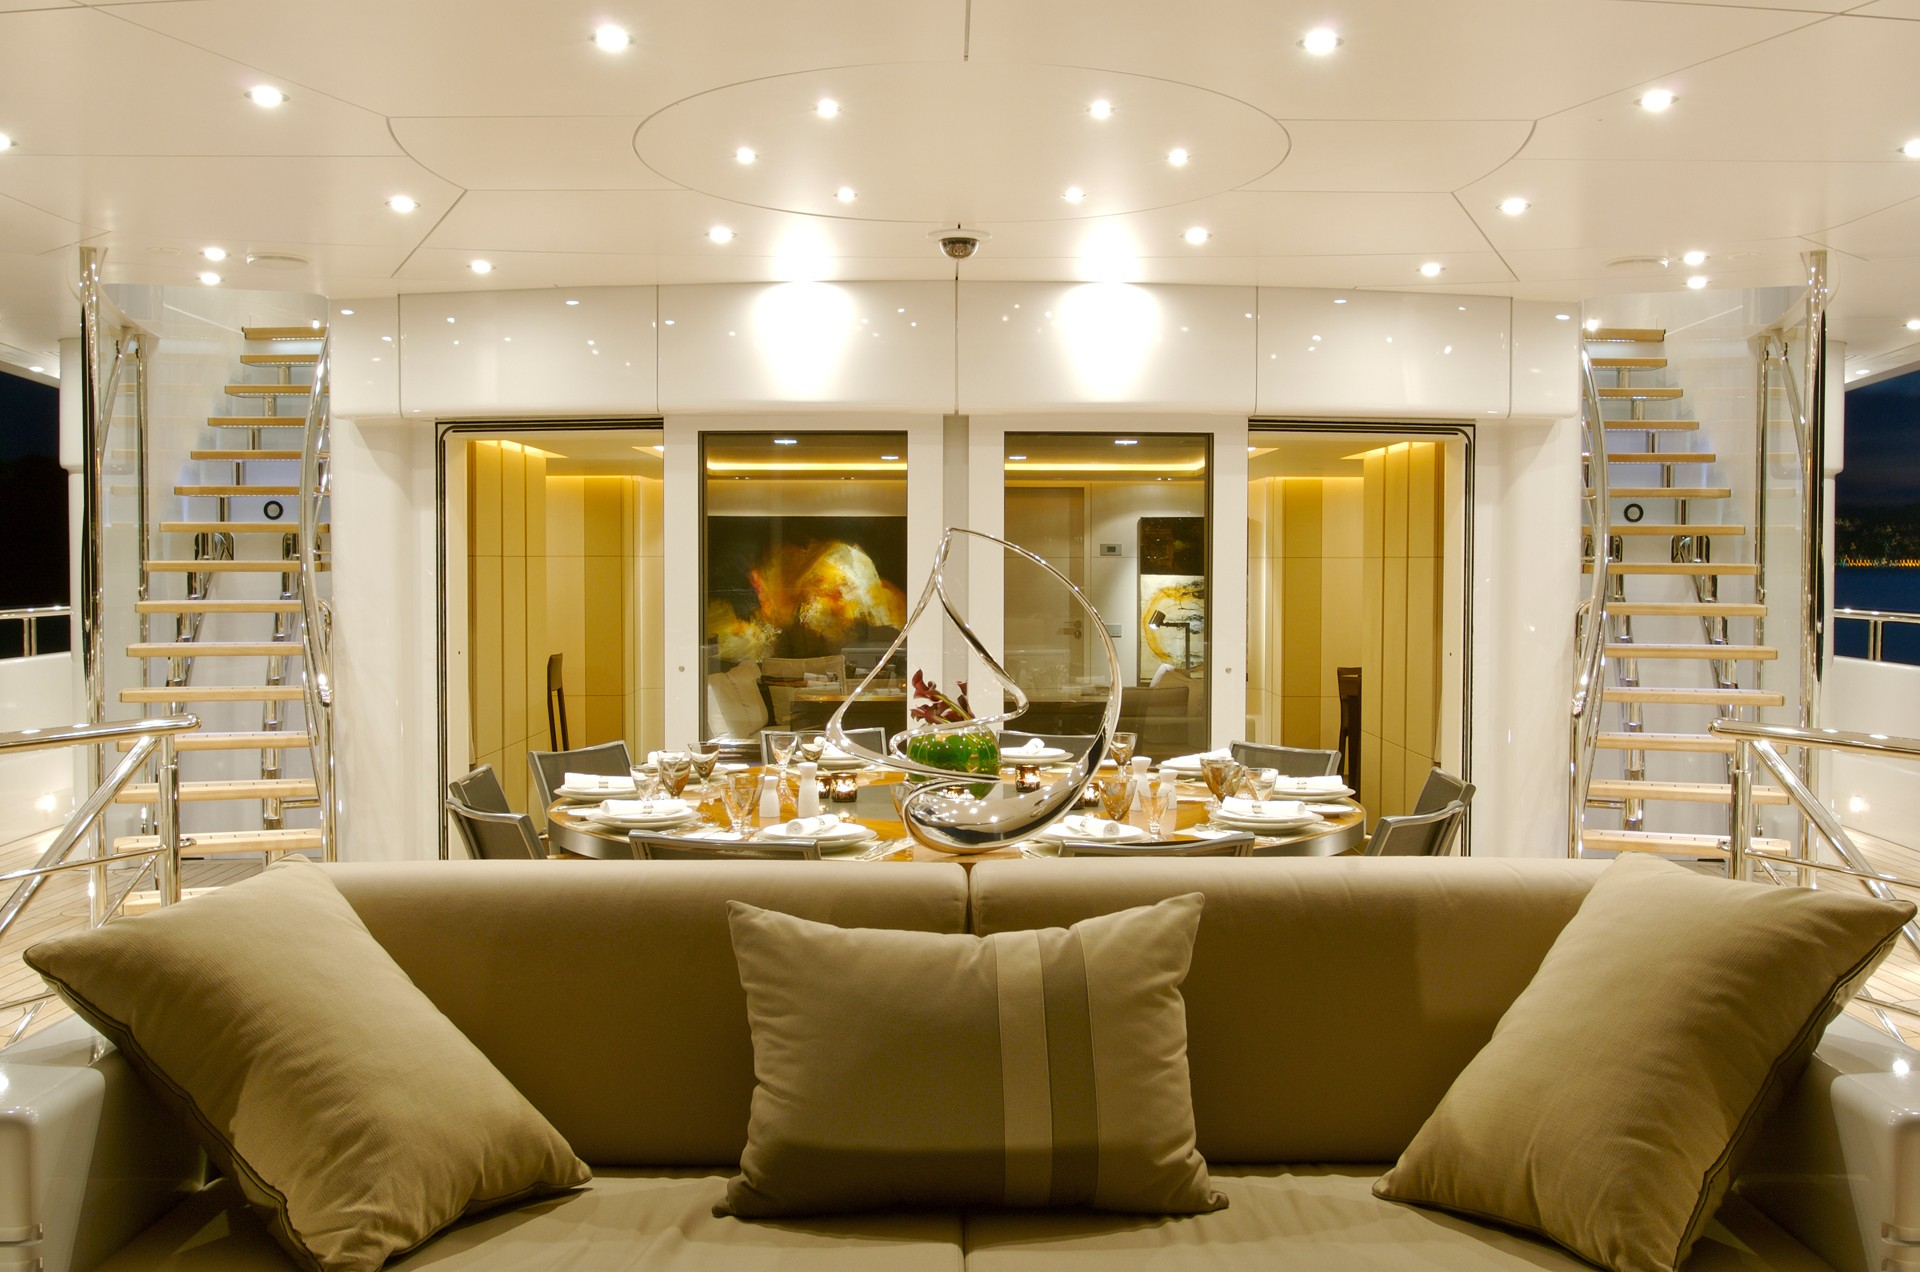 Aft Deck Dining In The Evening